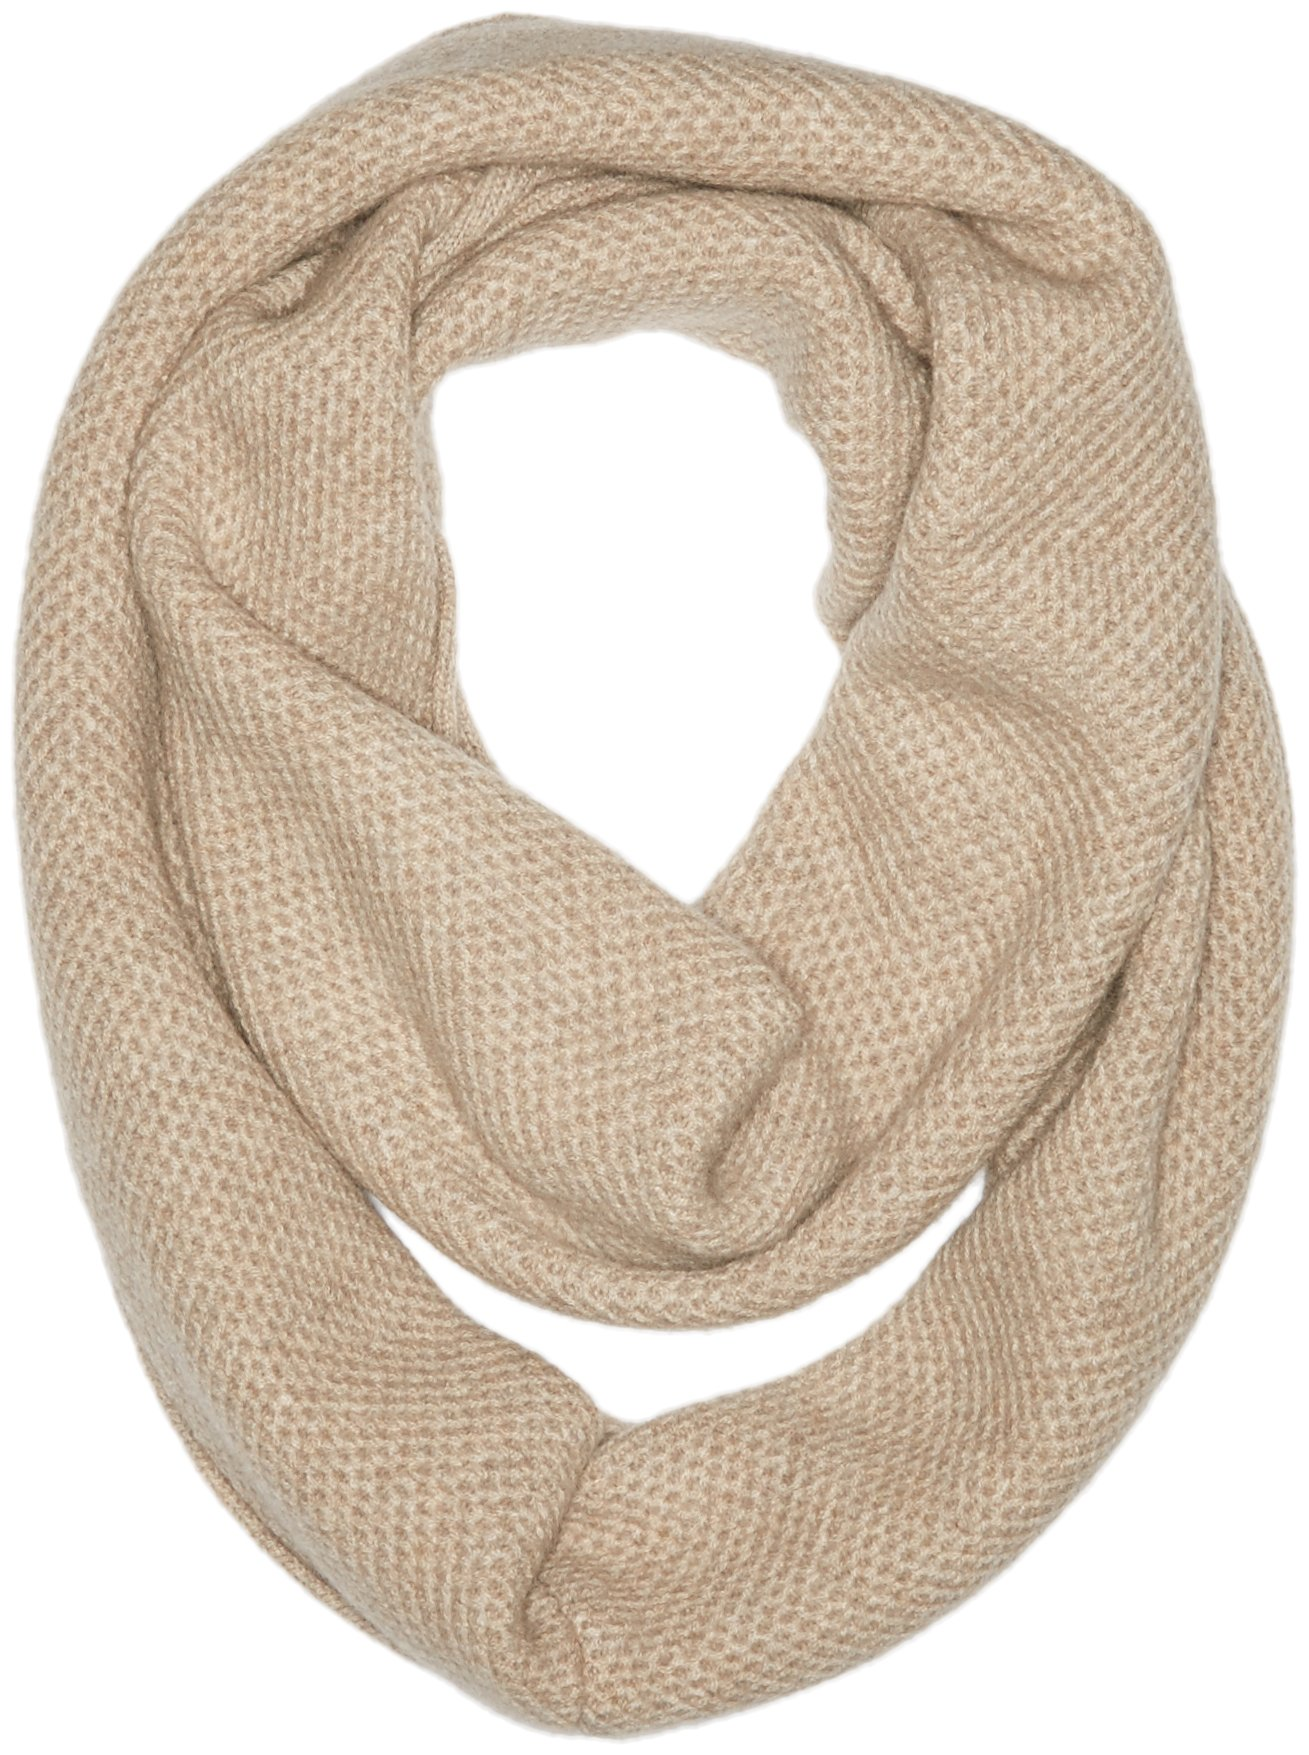 Sofia Cashmere Women's 100% Cashmere Honeycomb Infinity Scarf, Dark Natural, One